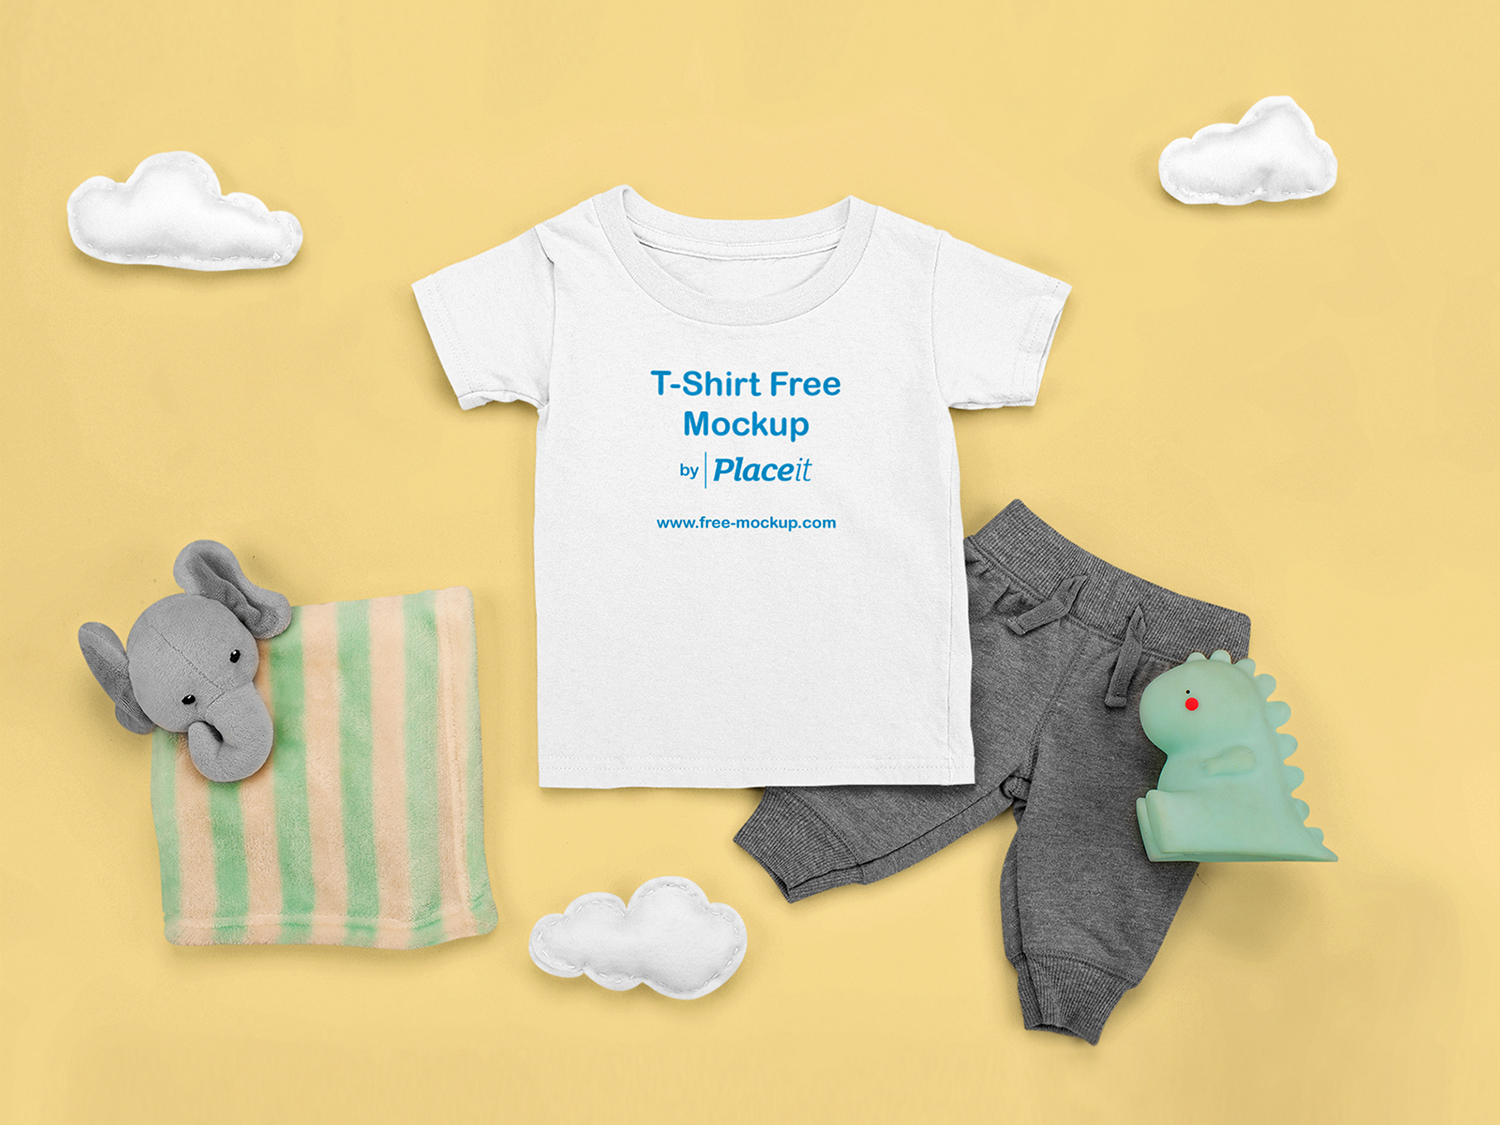 T-Shirt Free Mockup Featuring a Comfy Outfit for a Baby